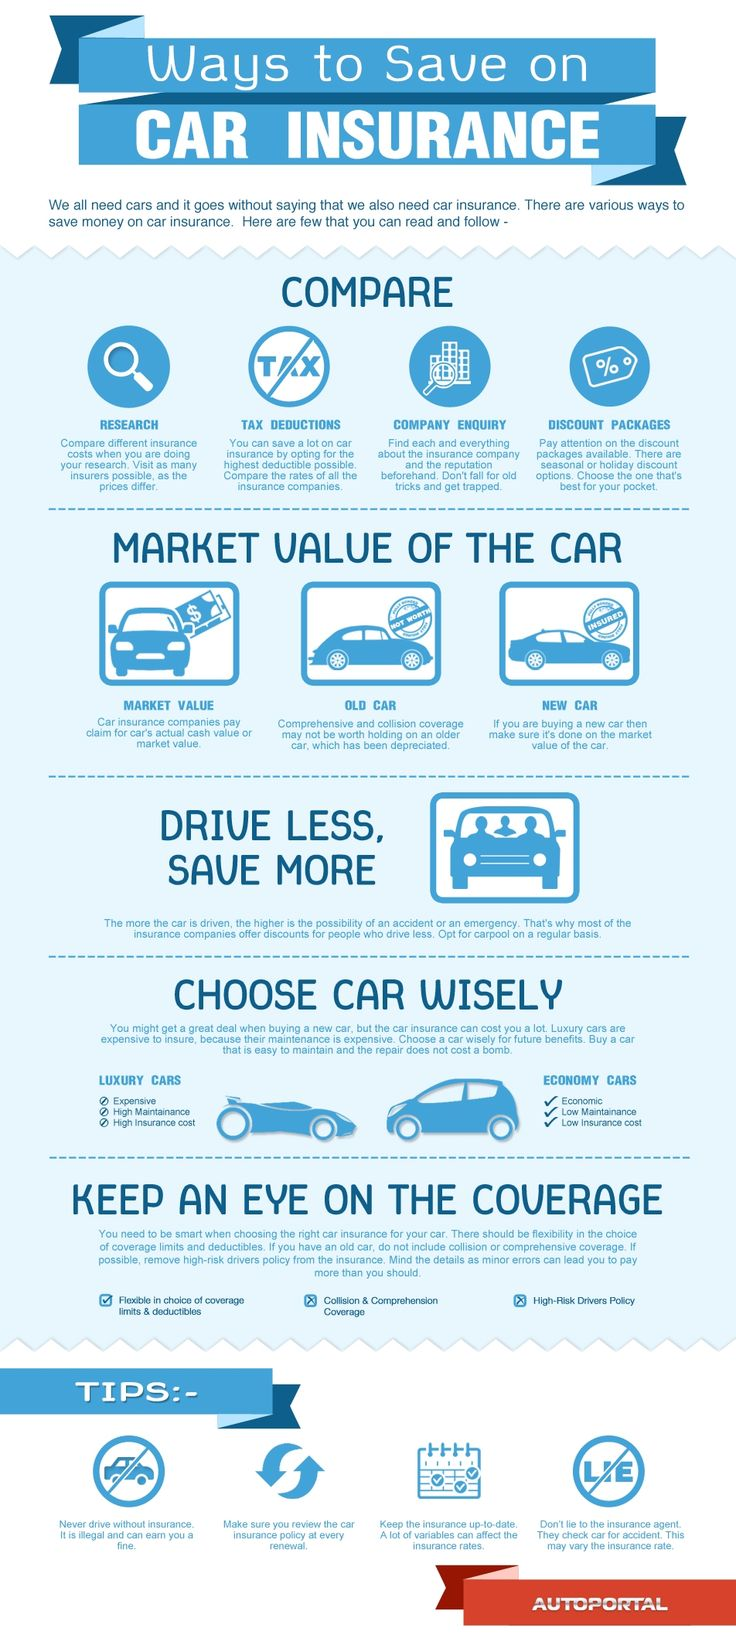 Car Insurance Quotes Comparison Endearing 23 Best Compare Car Insurance Images On Pinterest  Compare Car . Inspiration Design